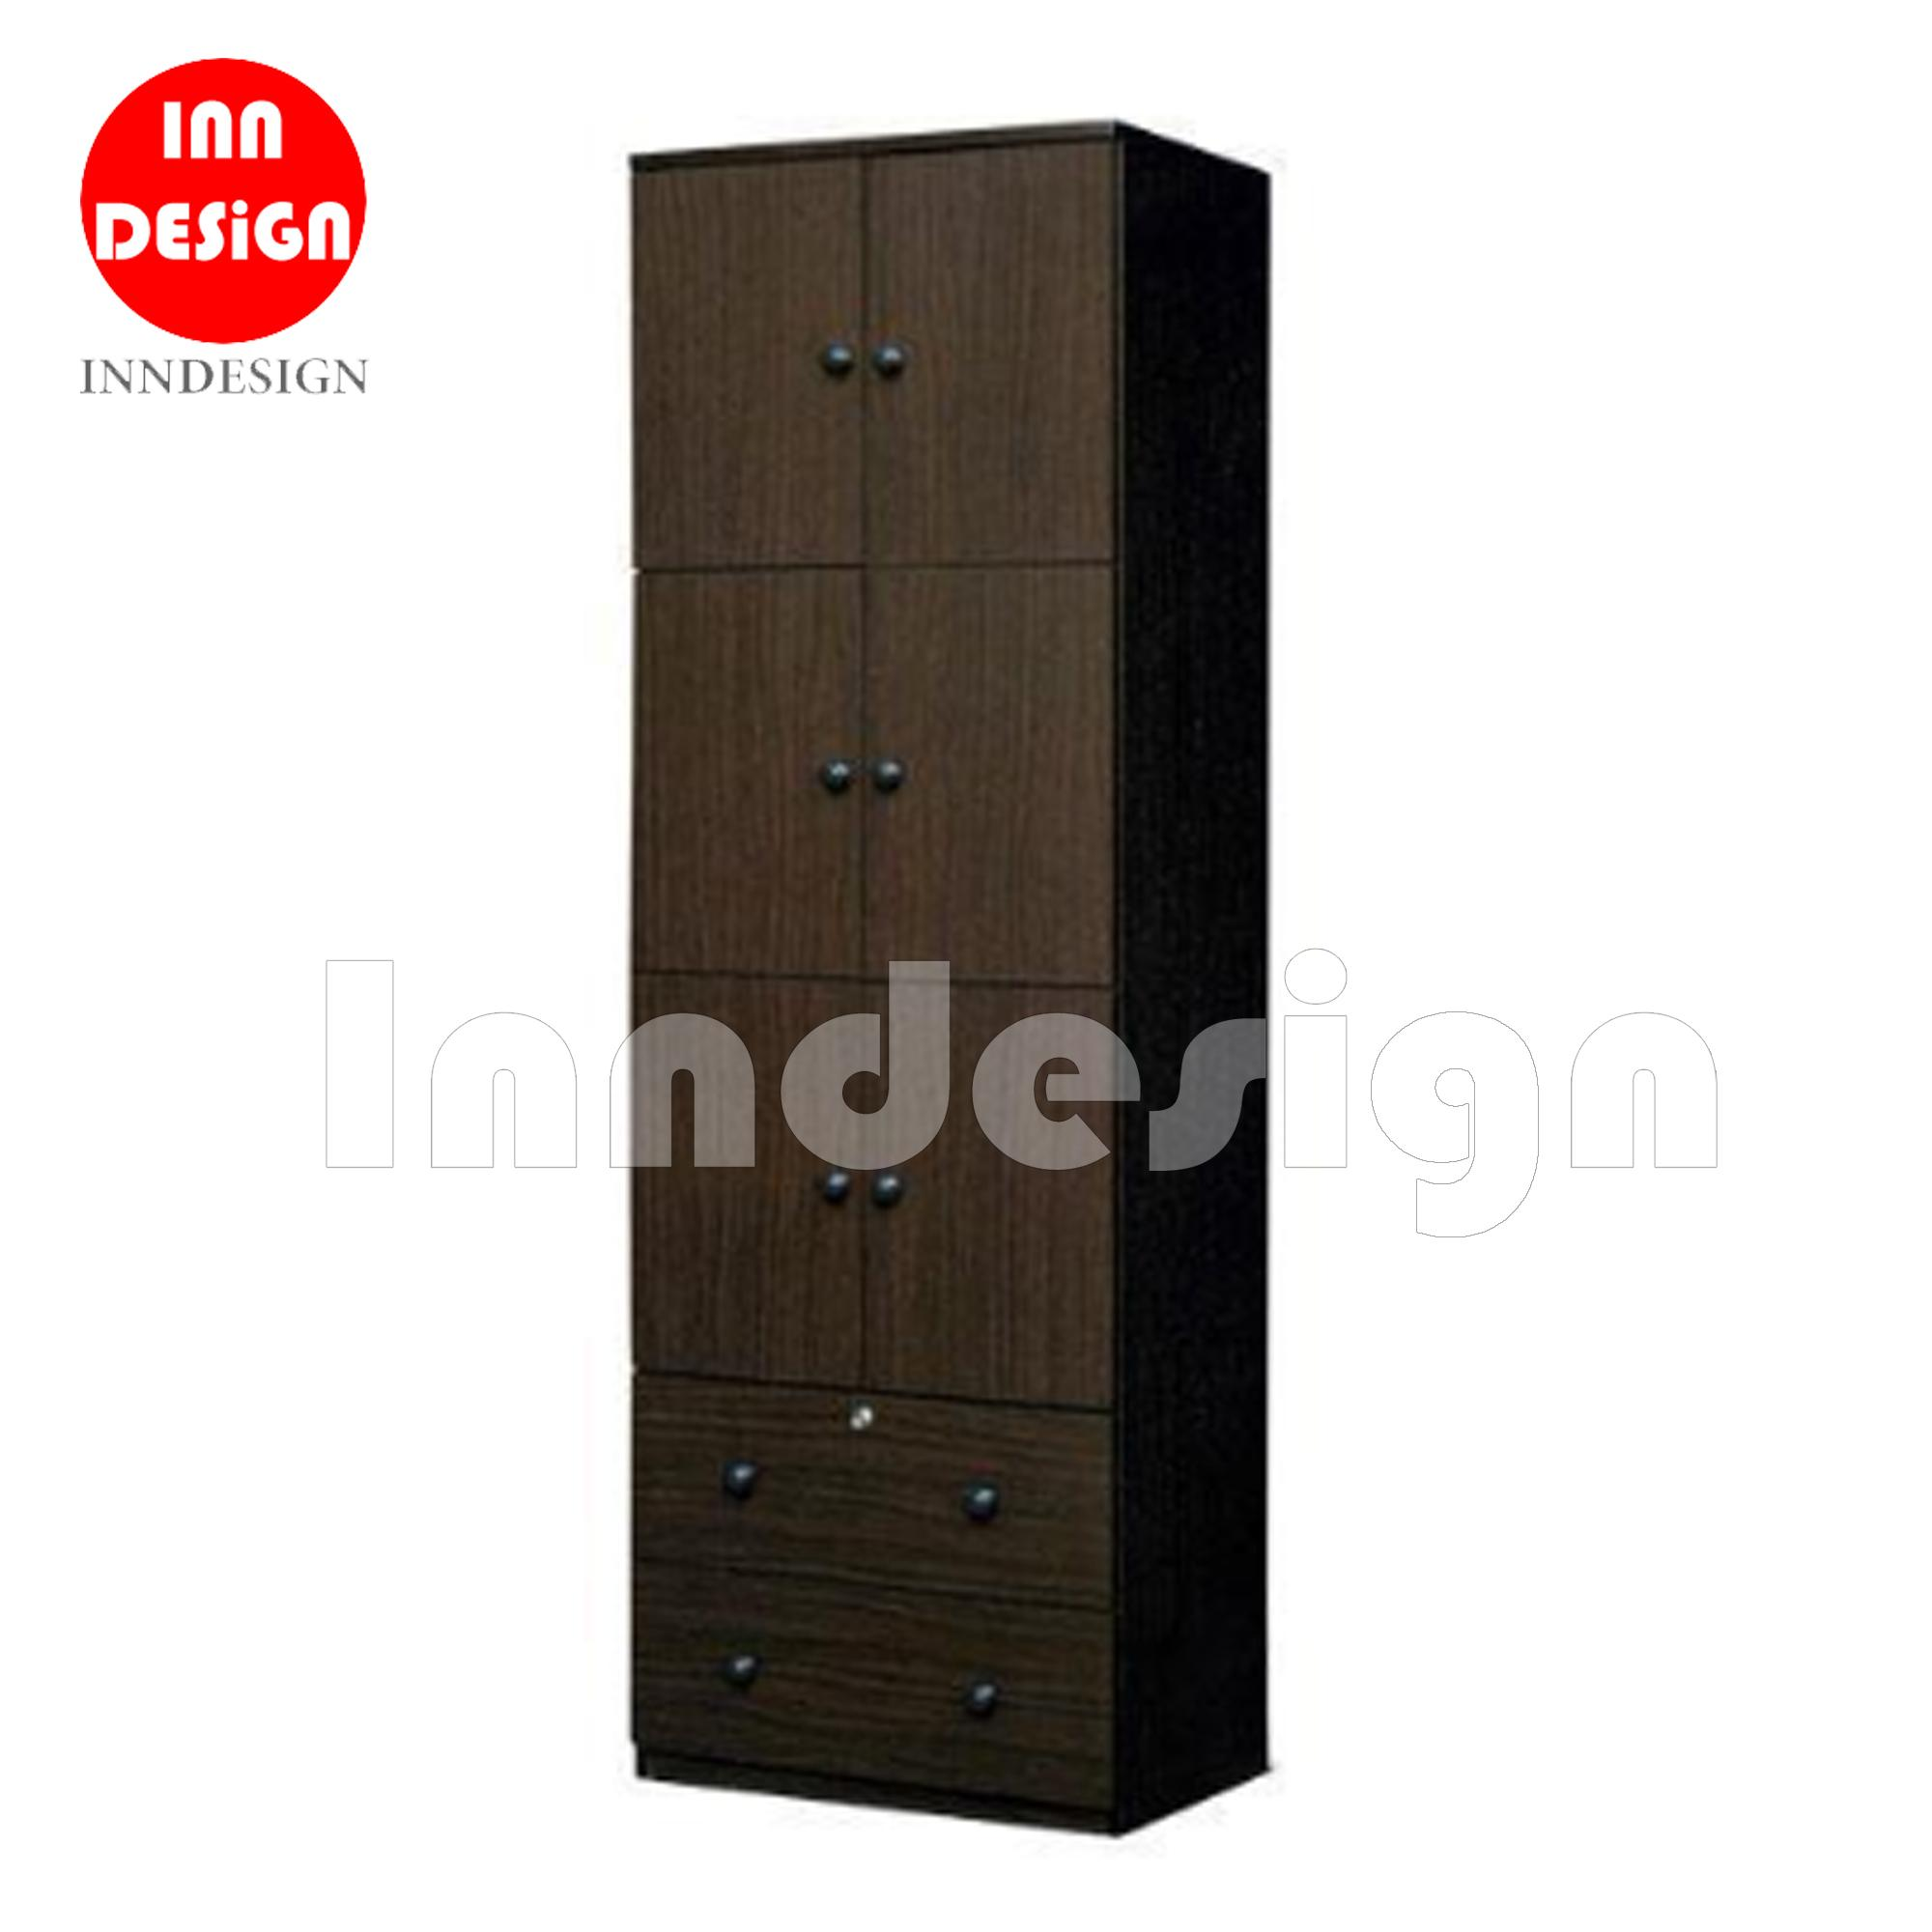 Caralyn Storage Cabinet / Utility Cabinet / Bookshelf / Filling Cabinets